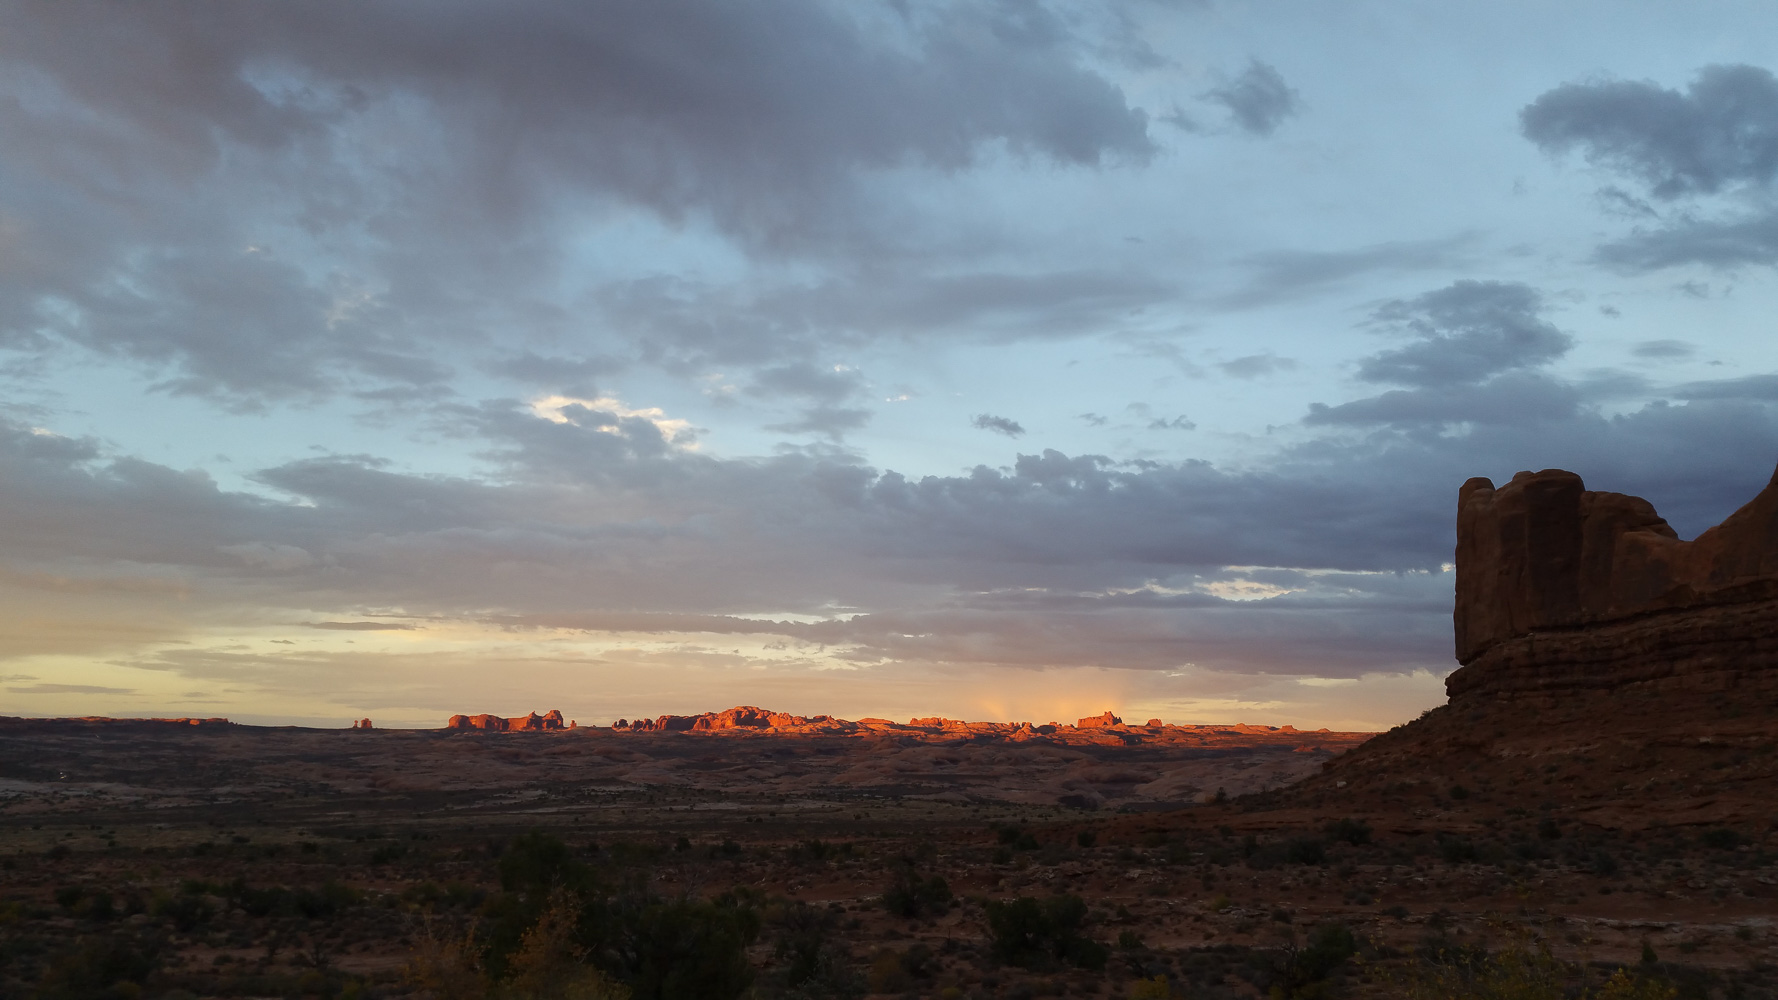 Sunset in Arches national park